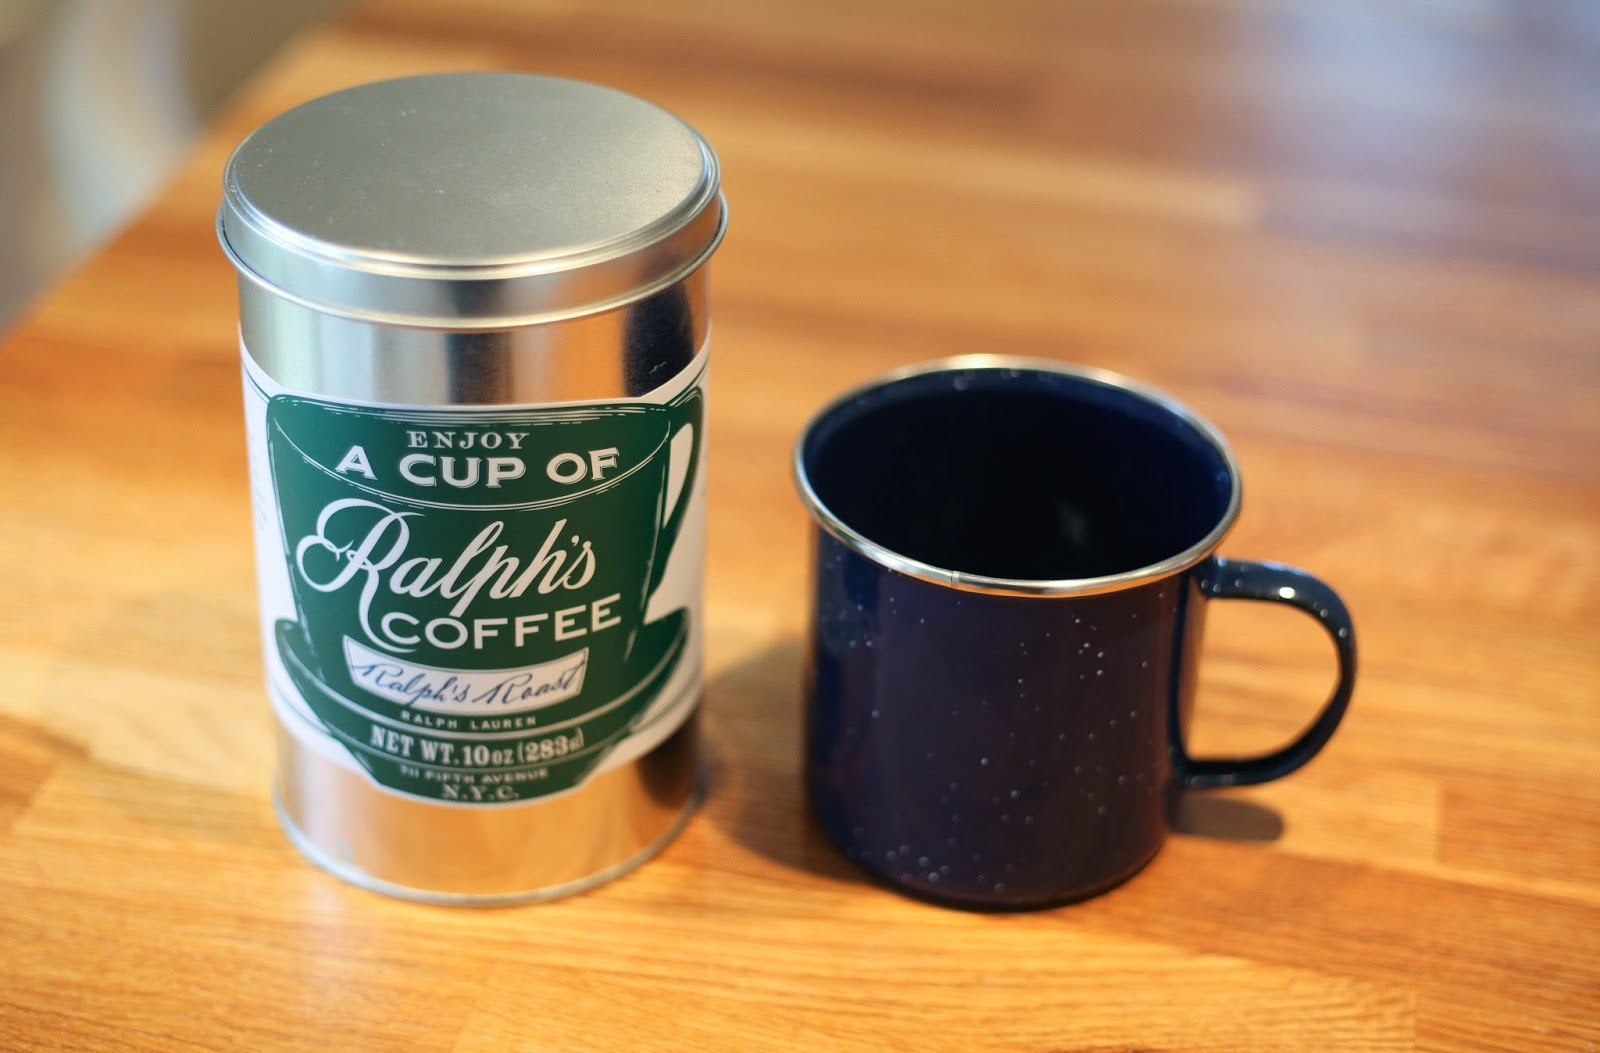 Ralph Lauren coffee